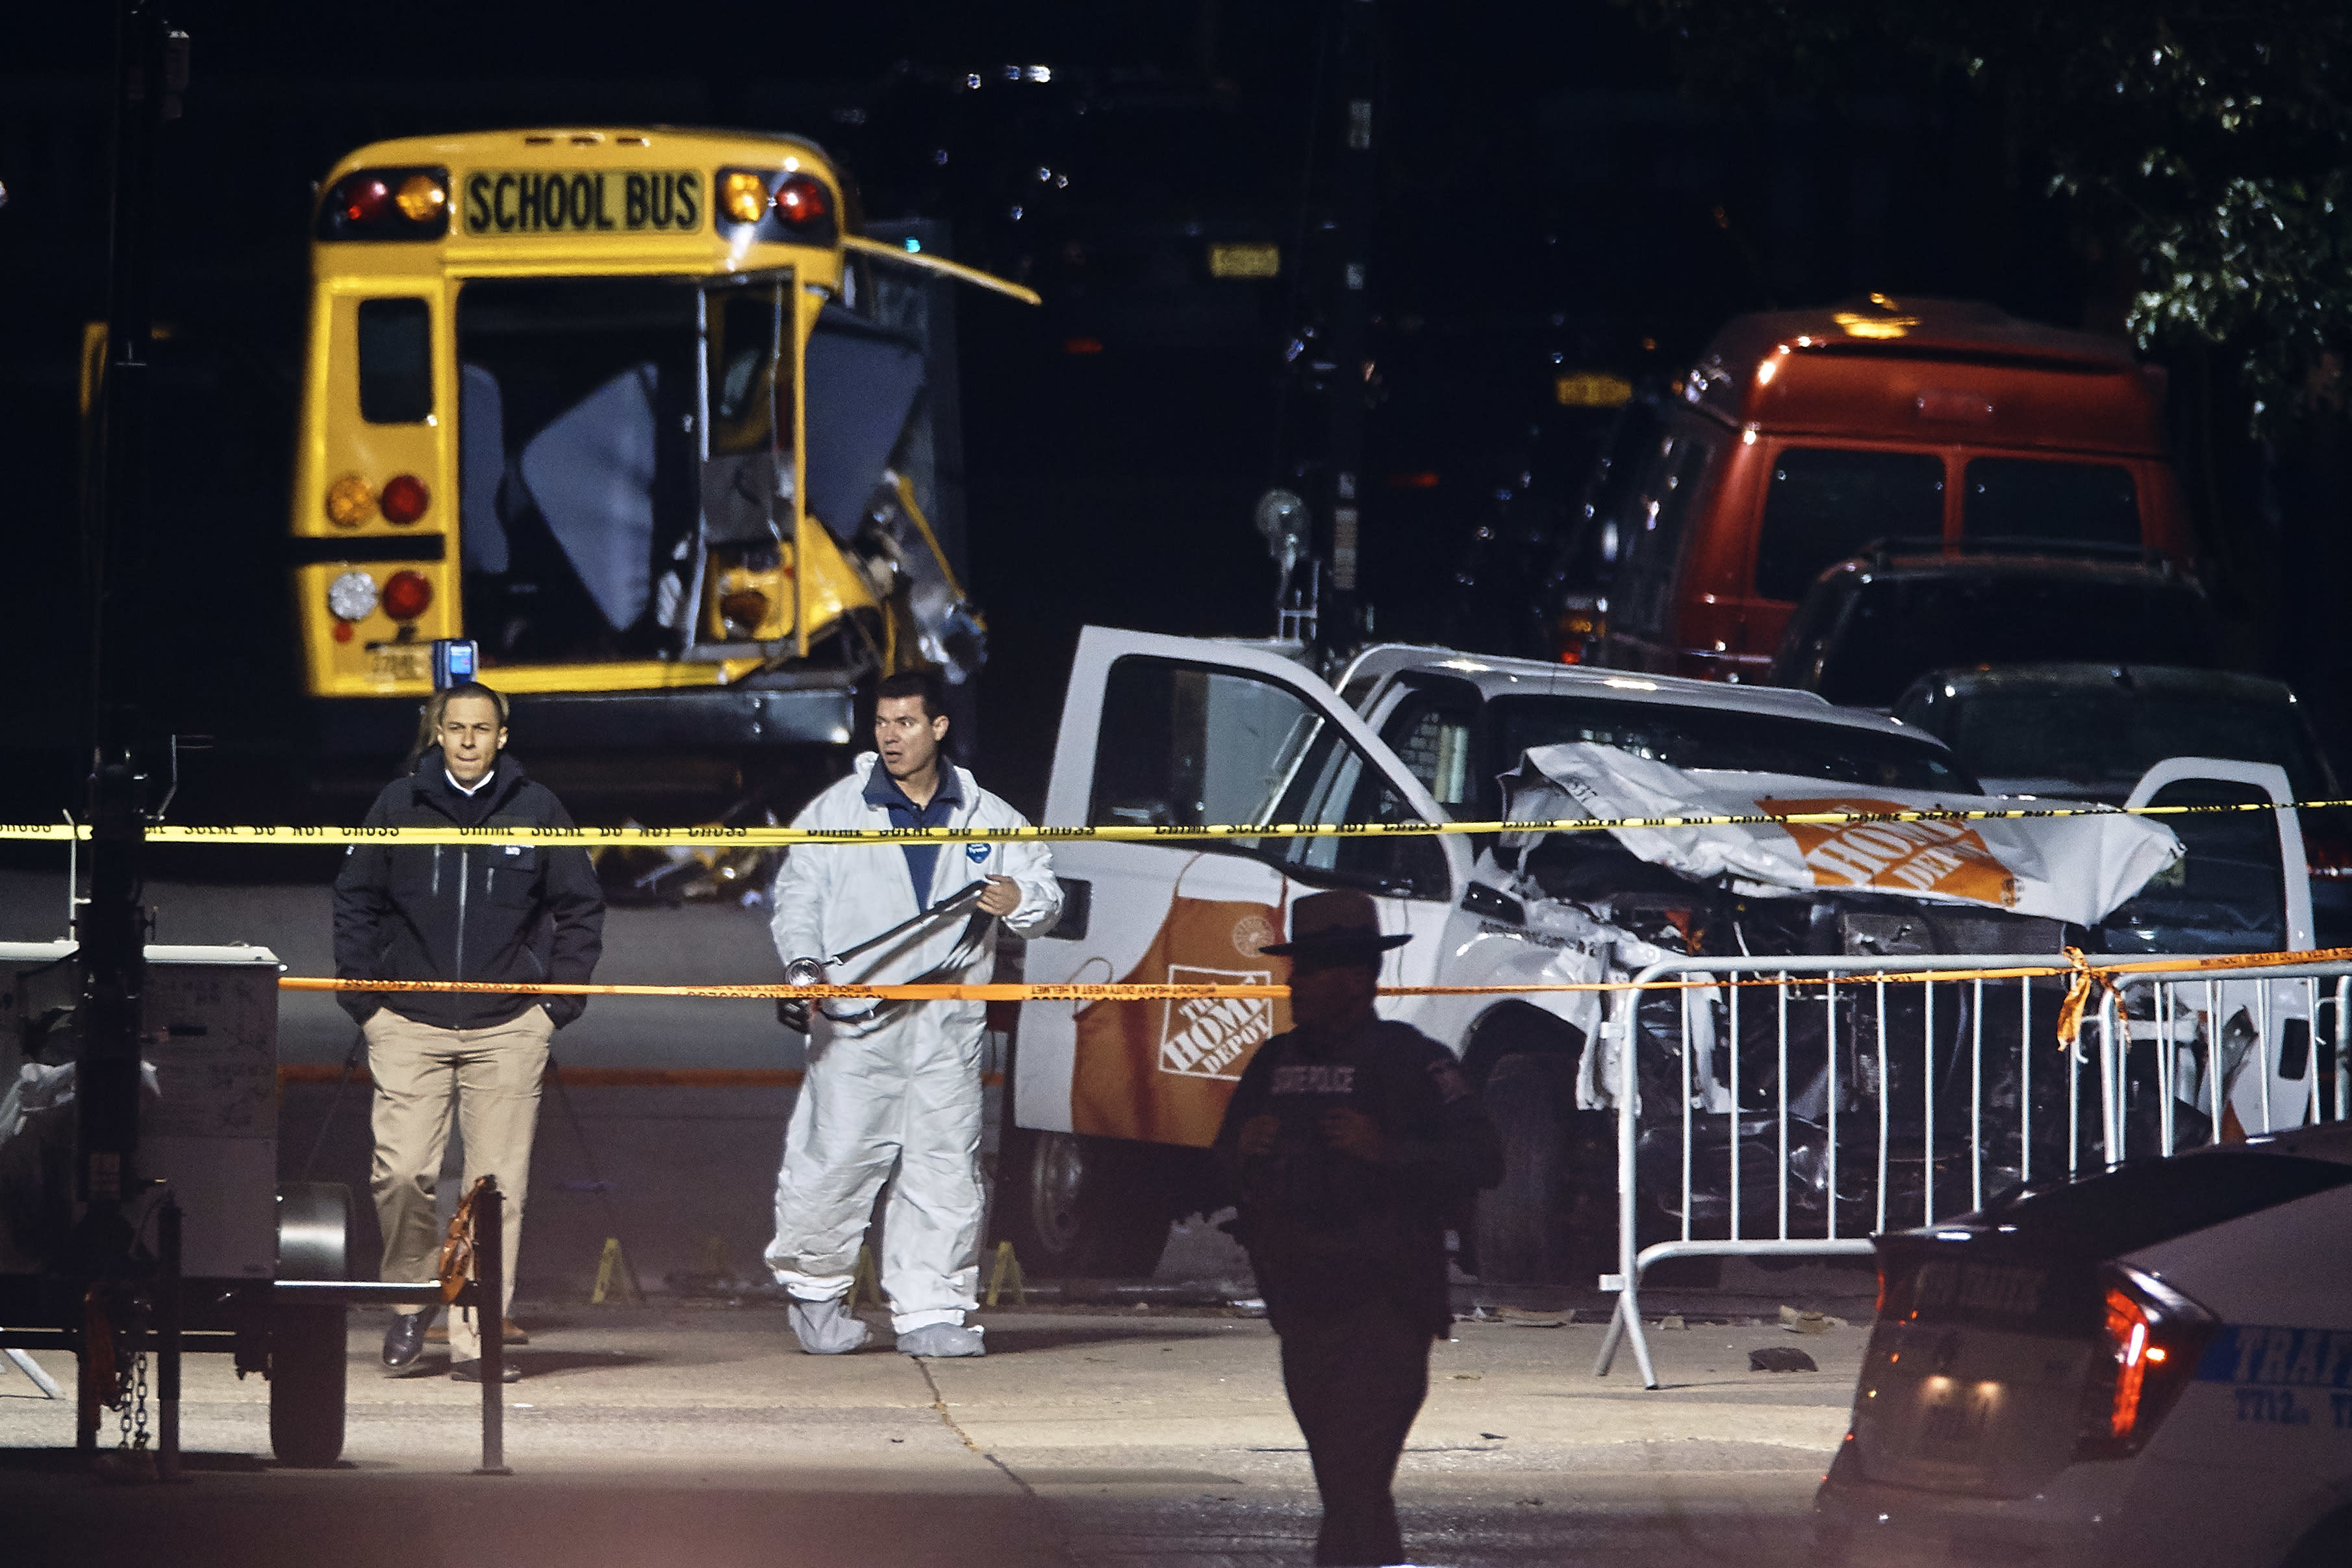 <p>Police work near a damaged Home Depot truck after a motorist drove onto a bike path near the World Trade Center memorial, striking and killing several people, Wednesday, Nov. 1, 2017, in New York. (Photo: Andres Kudacki/AP) </p>